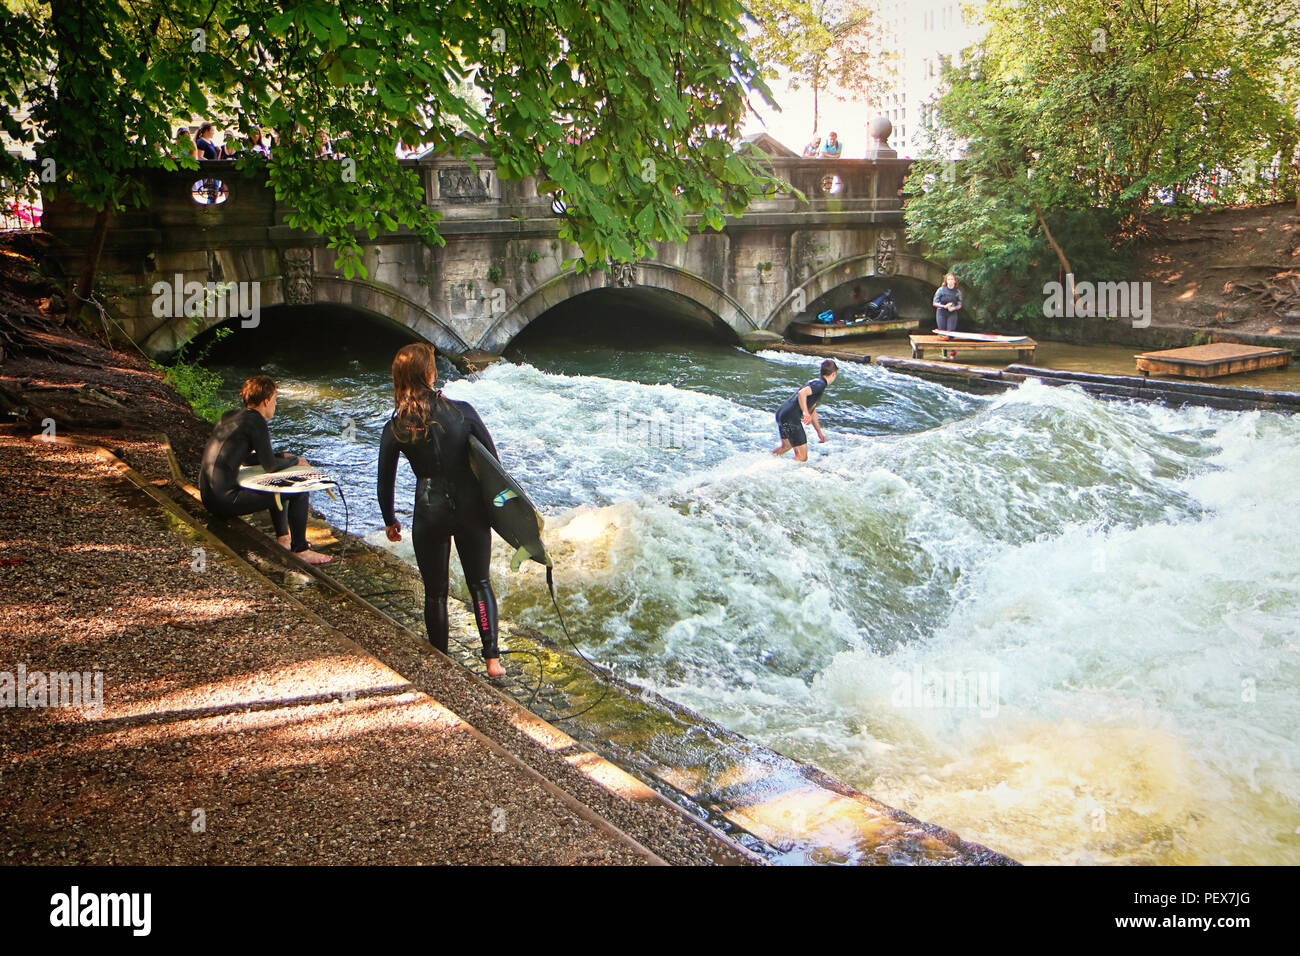 MUNICH, GERMANY - JULY 24, 2018 -  Munich, surfers in diving  suit practice on the artificial wave on the Eisbach, small river across the Englischer G - Stock Image